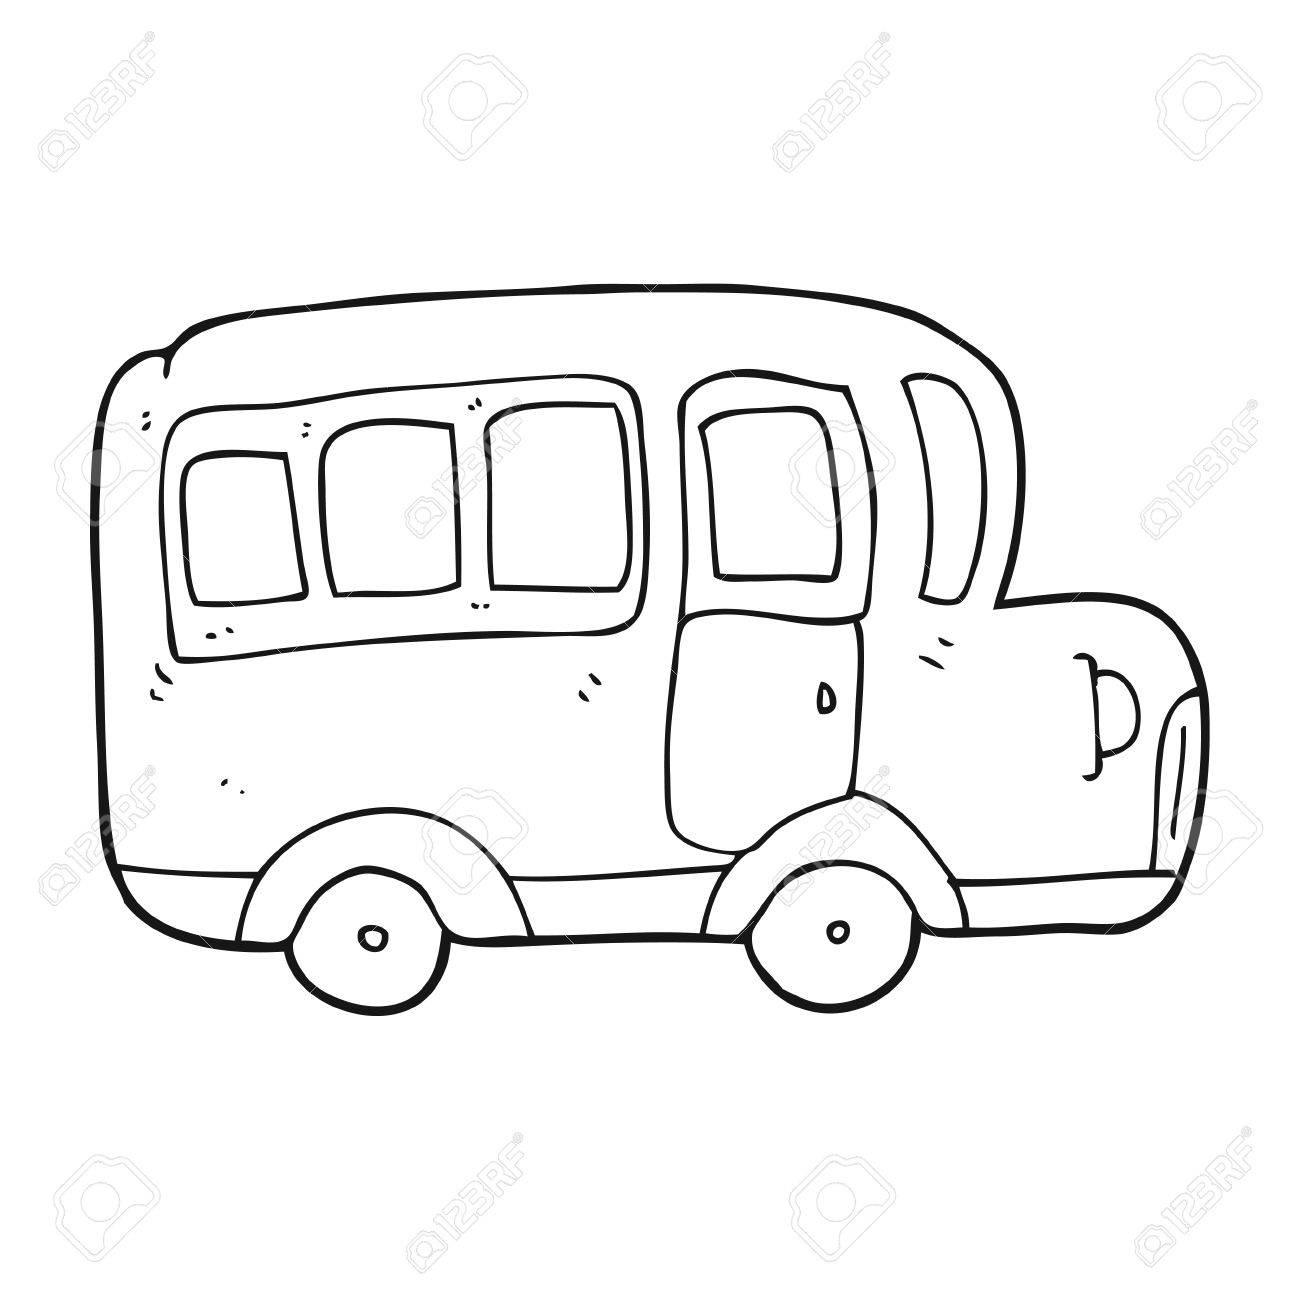 Line Drawing Bus : School bus line drawing at getdrawings free for